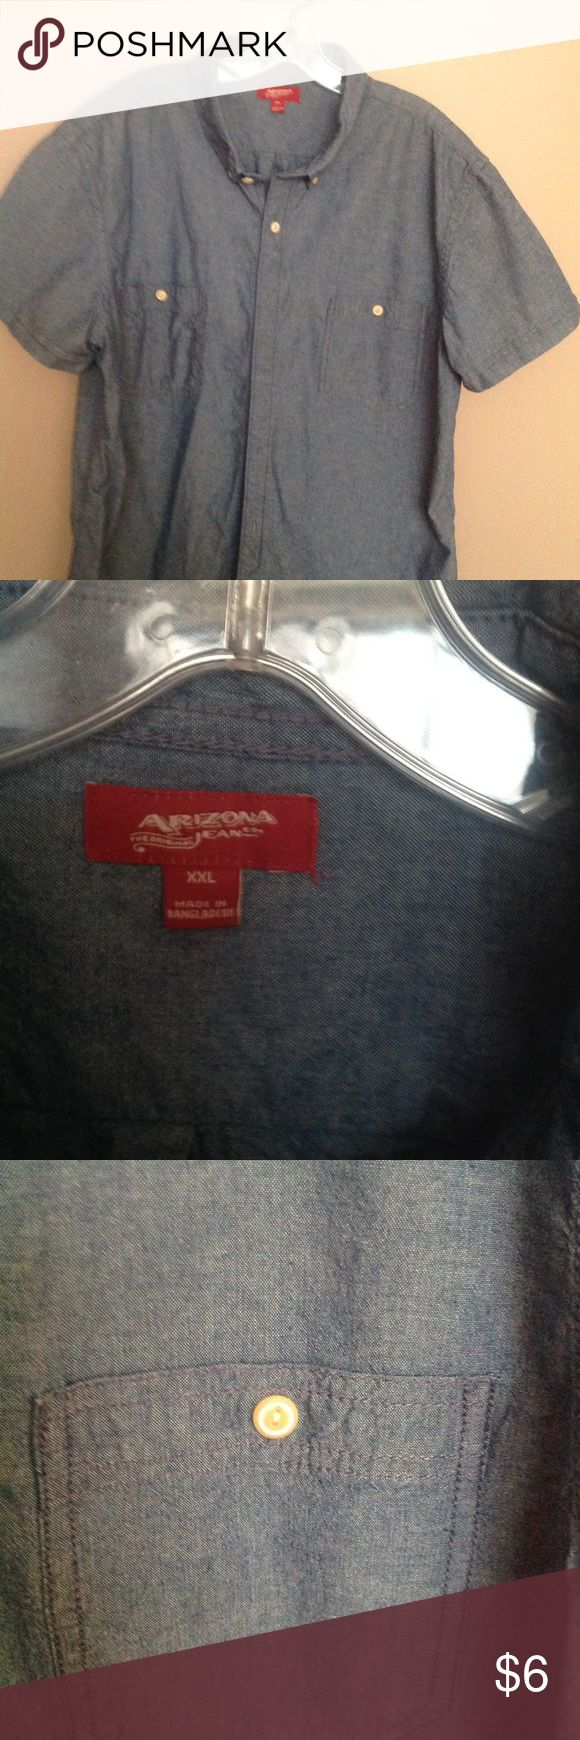 Men's short sleeve denim shirt Brand new never worn just wrinkled from storage light denim button down casual dress shirt. No ripping tears stains or discoloration. All my clothes come from a smoke free house. Please ask if any questions. Arizona Jean Company Shirts Casual Button Down Shirts